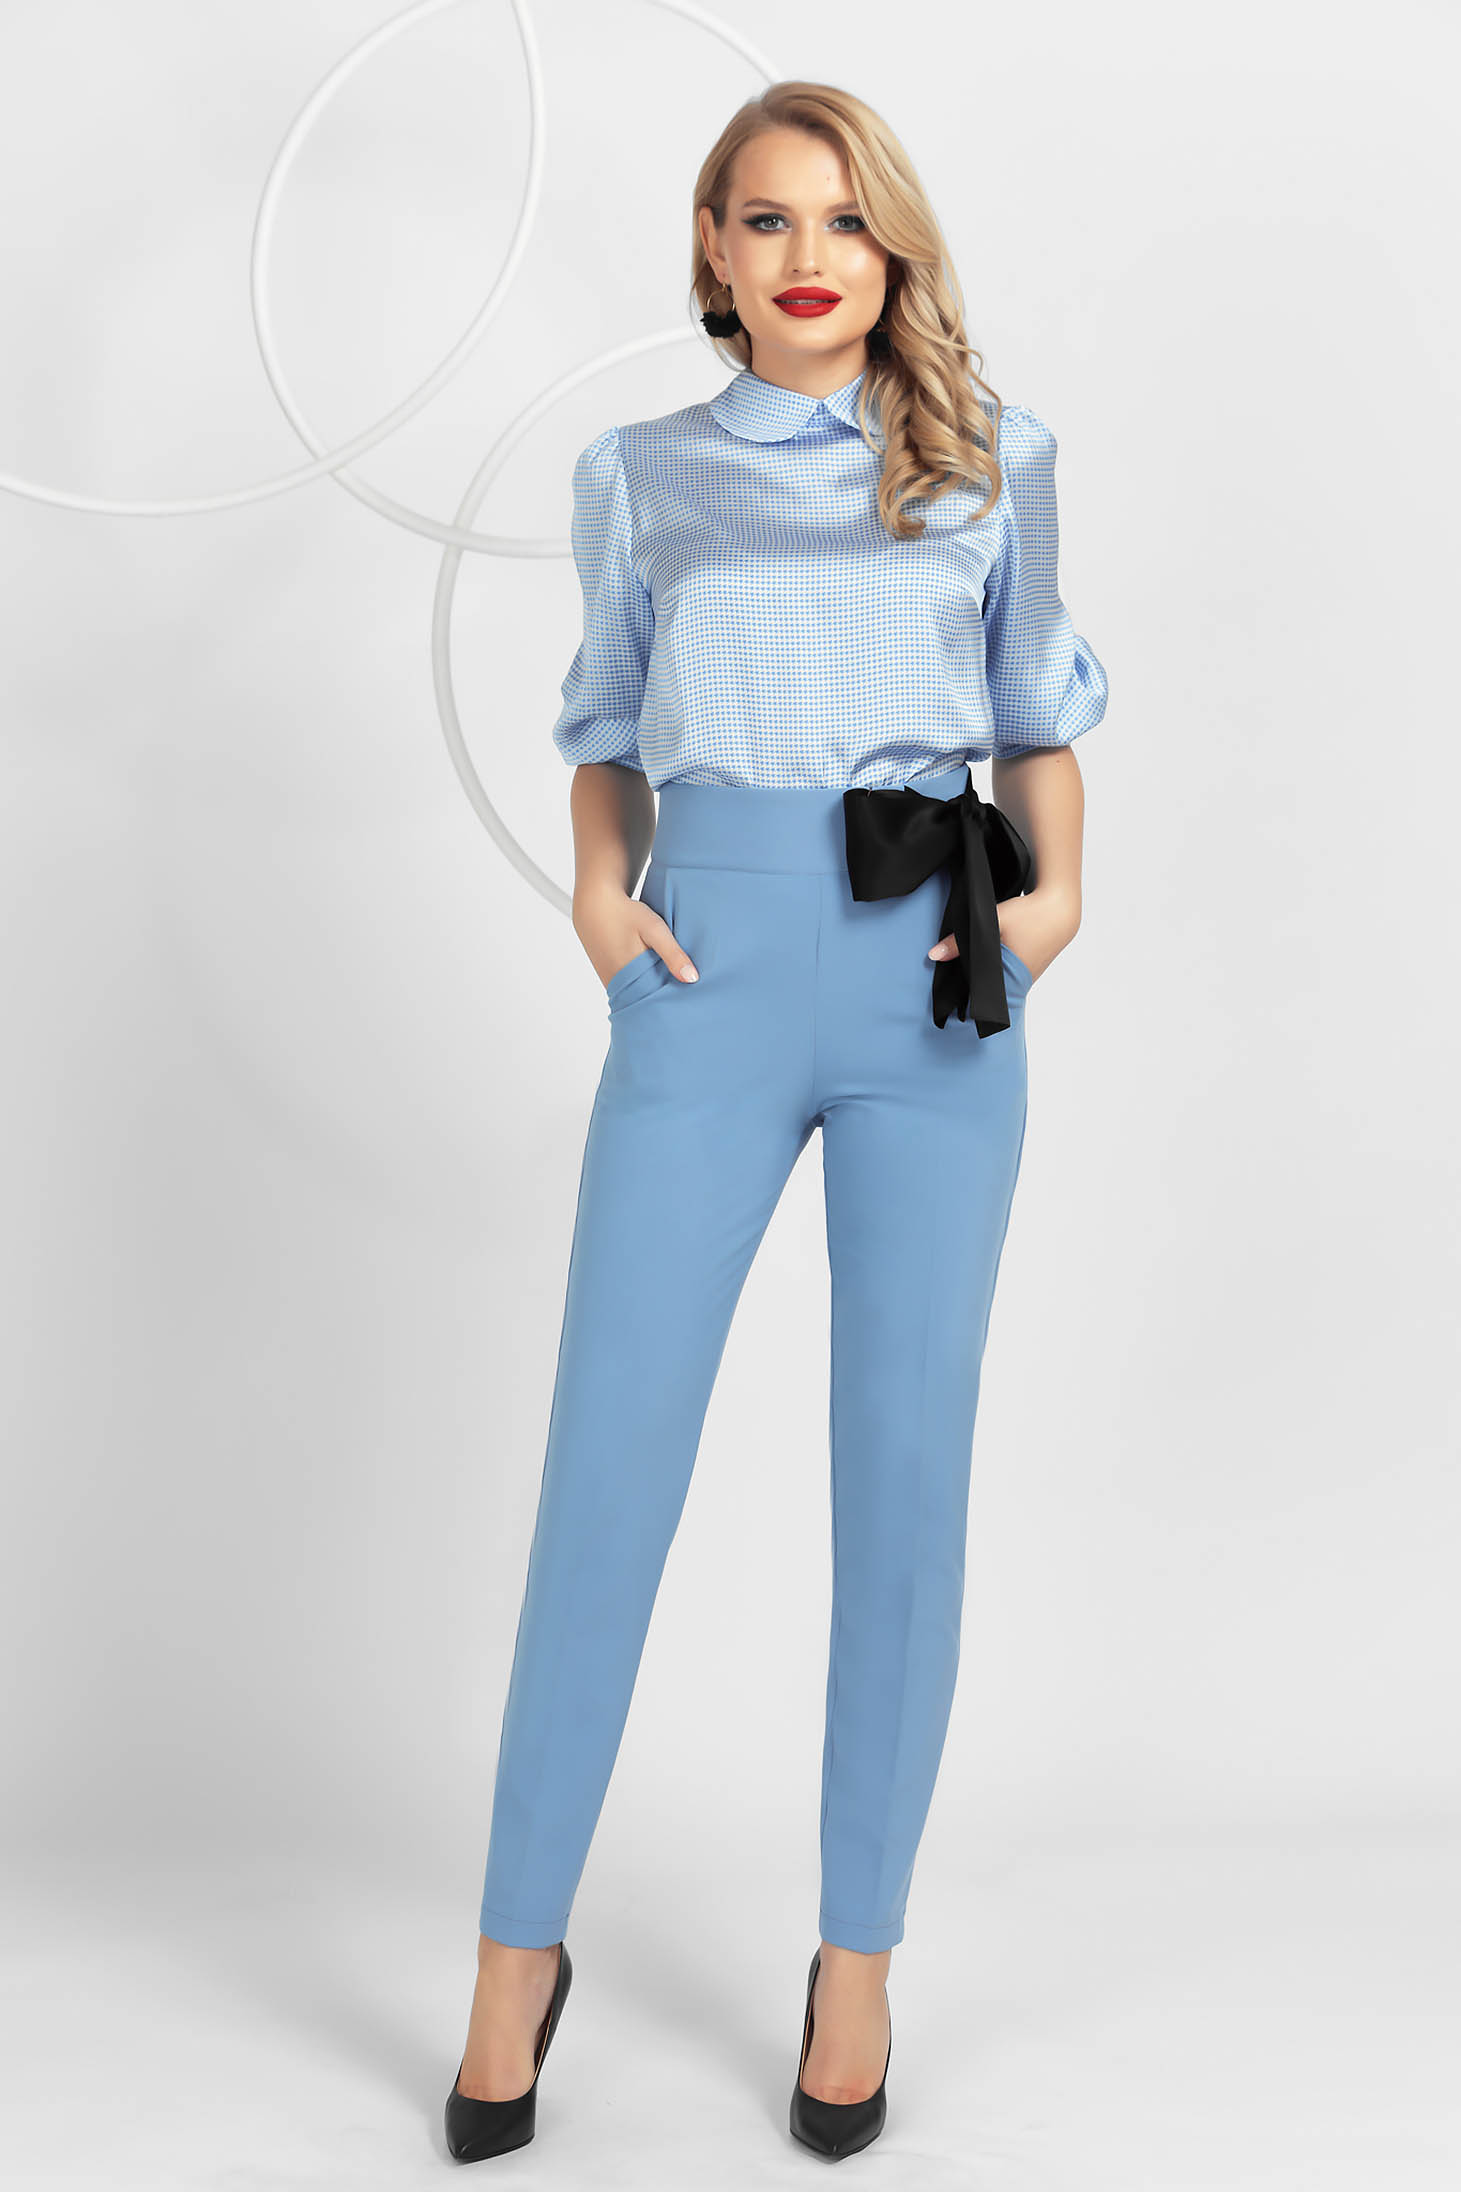 Lightblue trousers conical high waisted slightly elastic fabric satin ribbon fastening